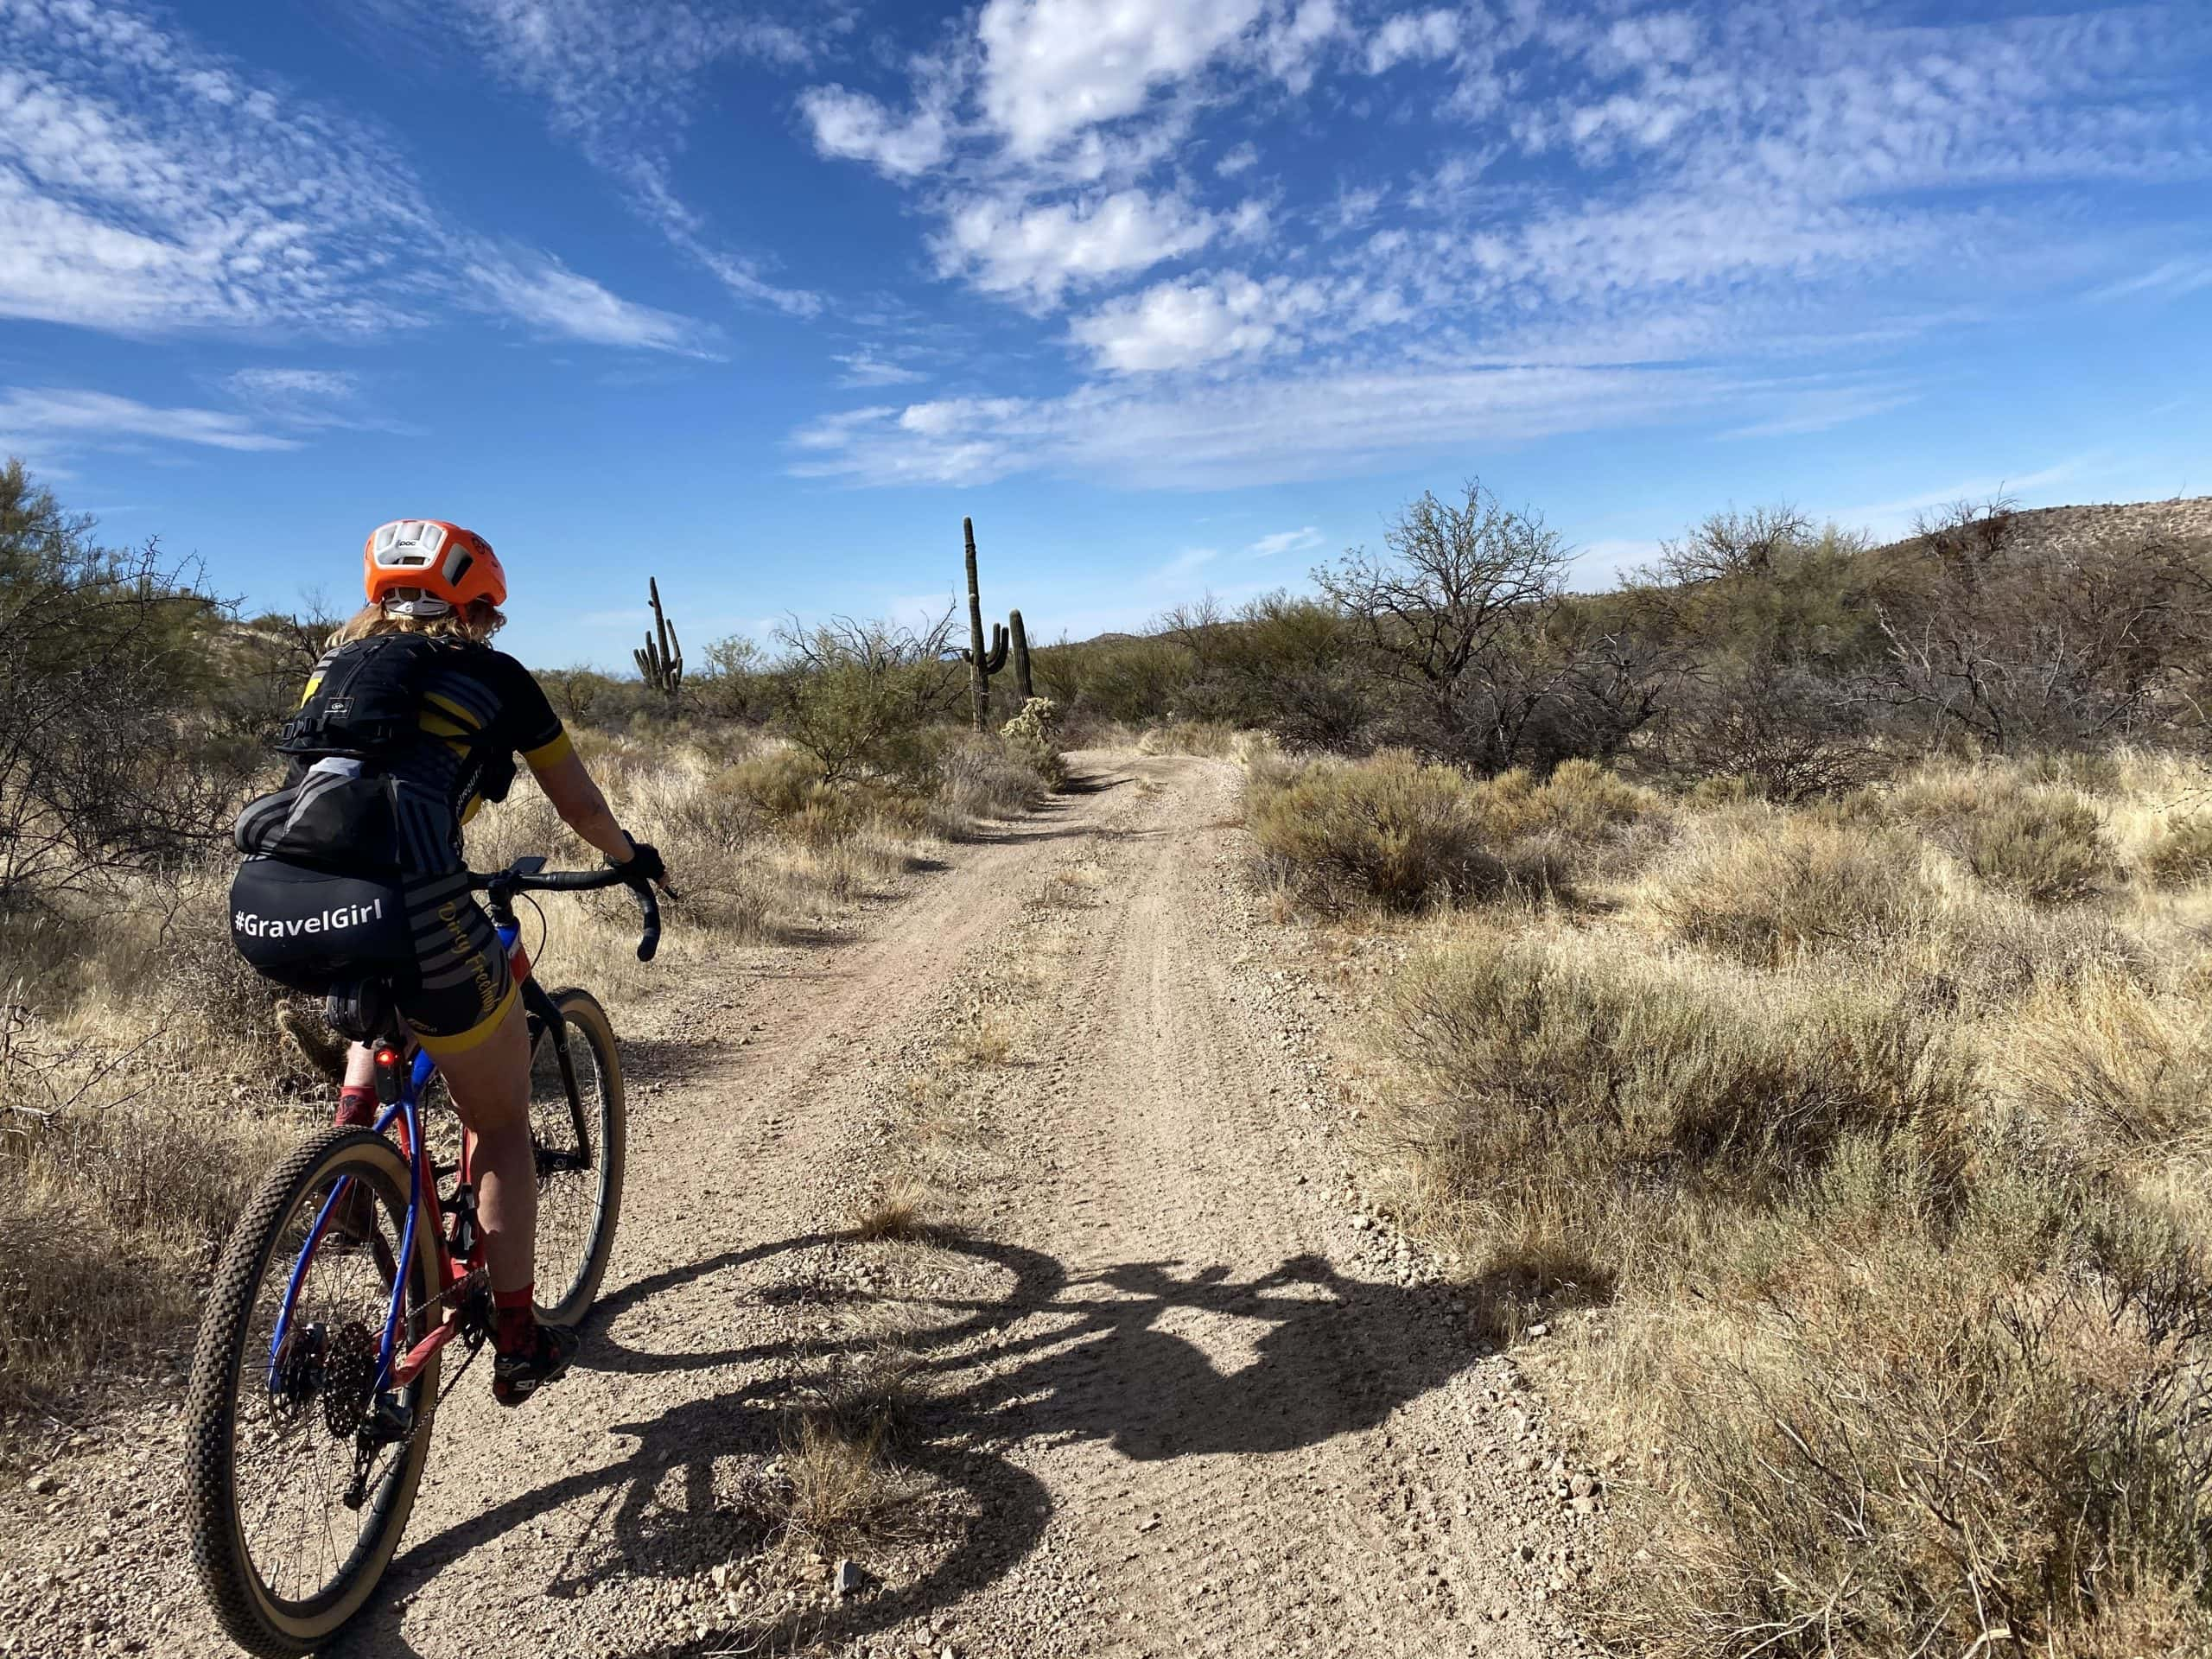 Gravel Girl on fast, but primitive dirt road north of the 96 Ranch Road.